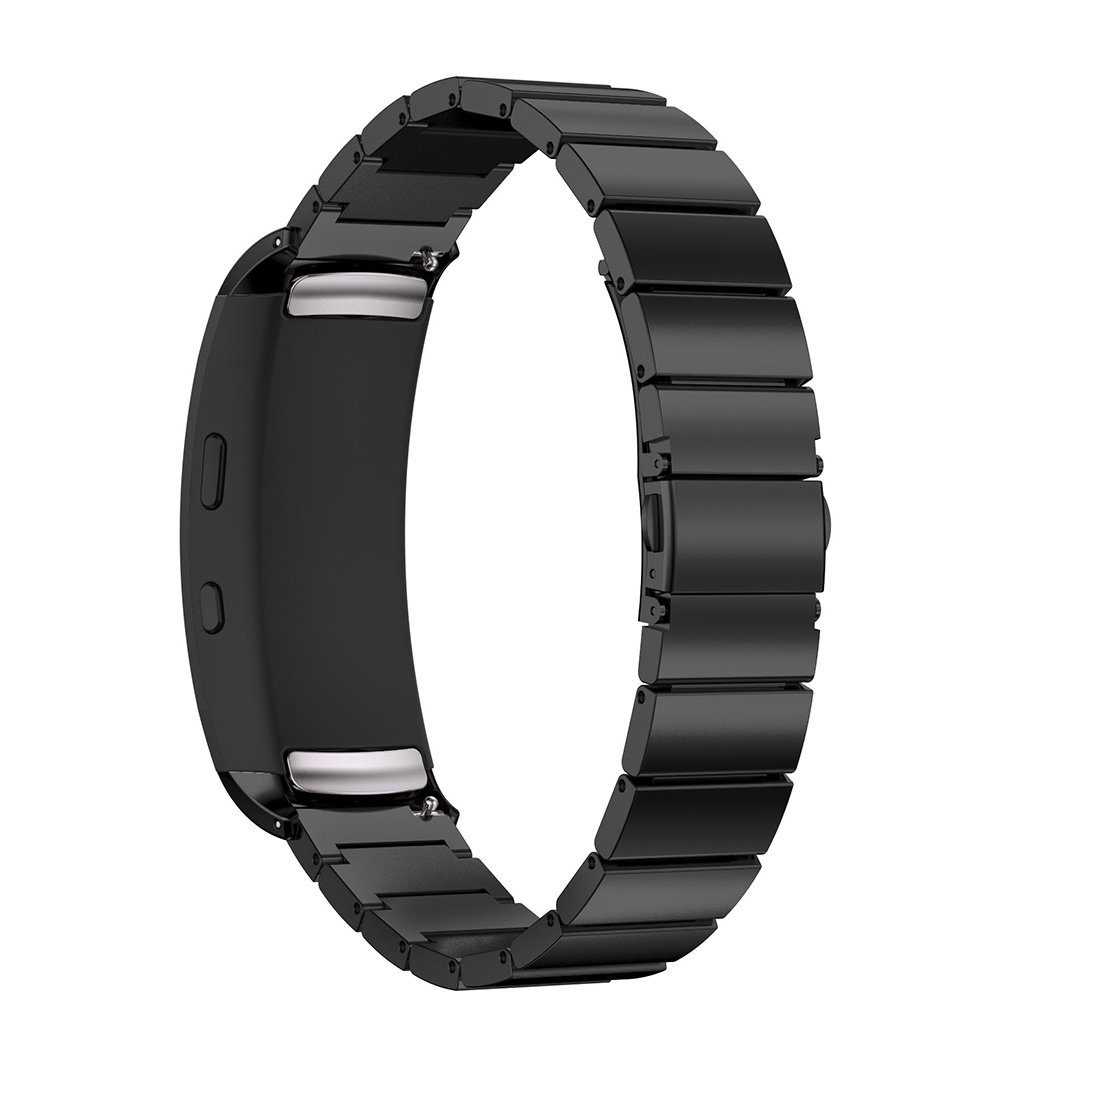 Amazon.com: HERO Iand reloj de pulsera de acero inoxidable ...